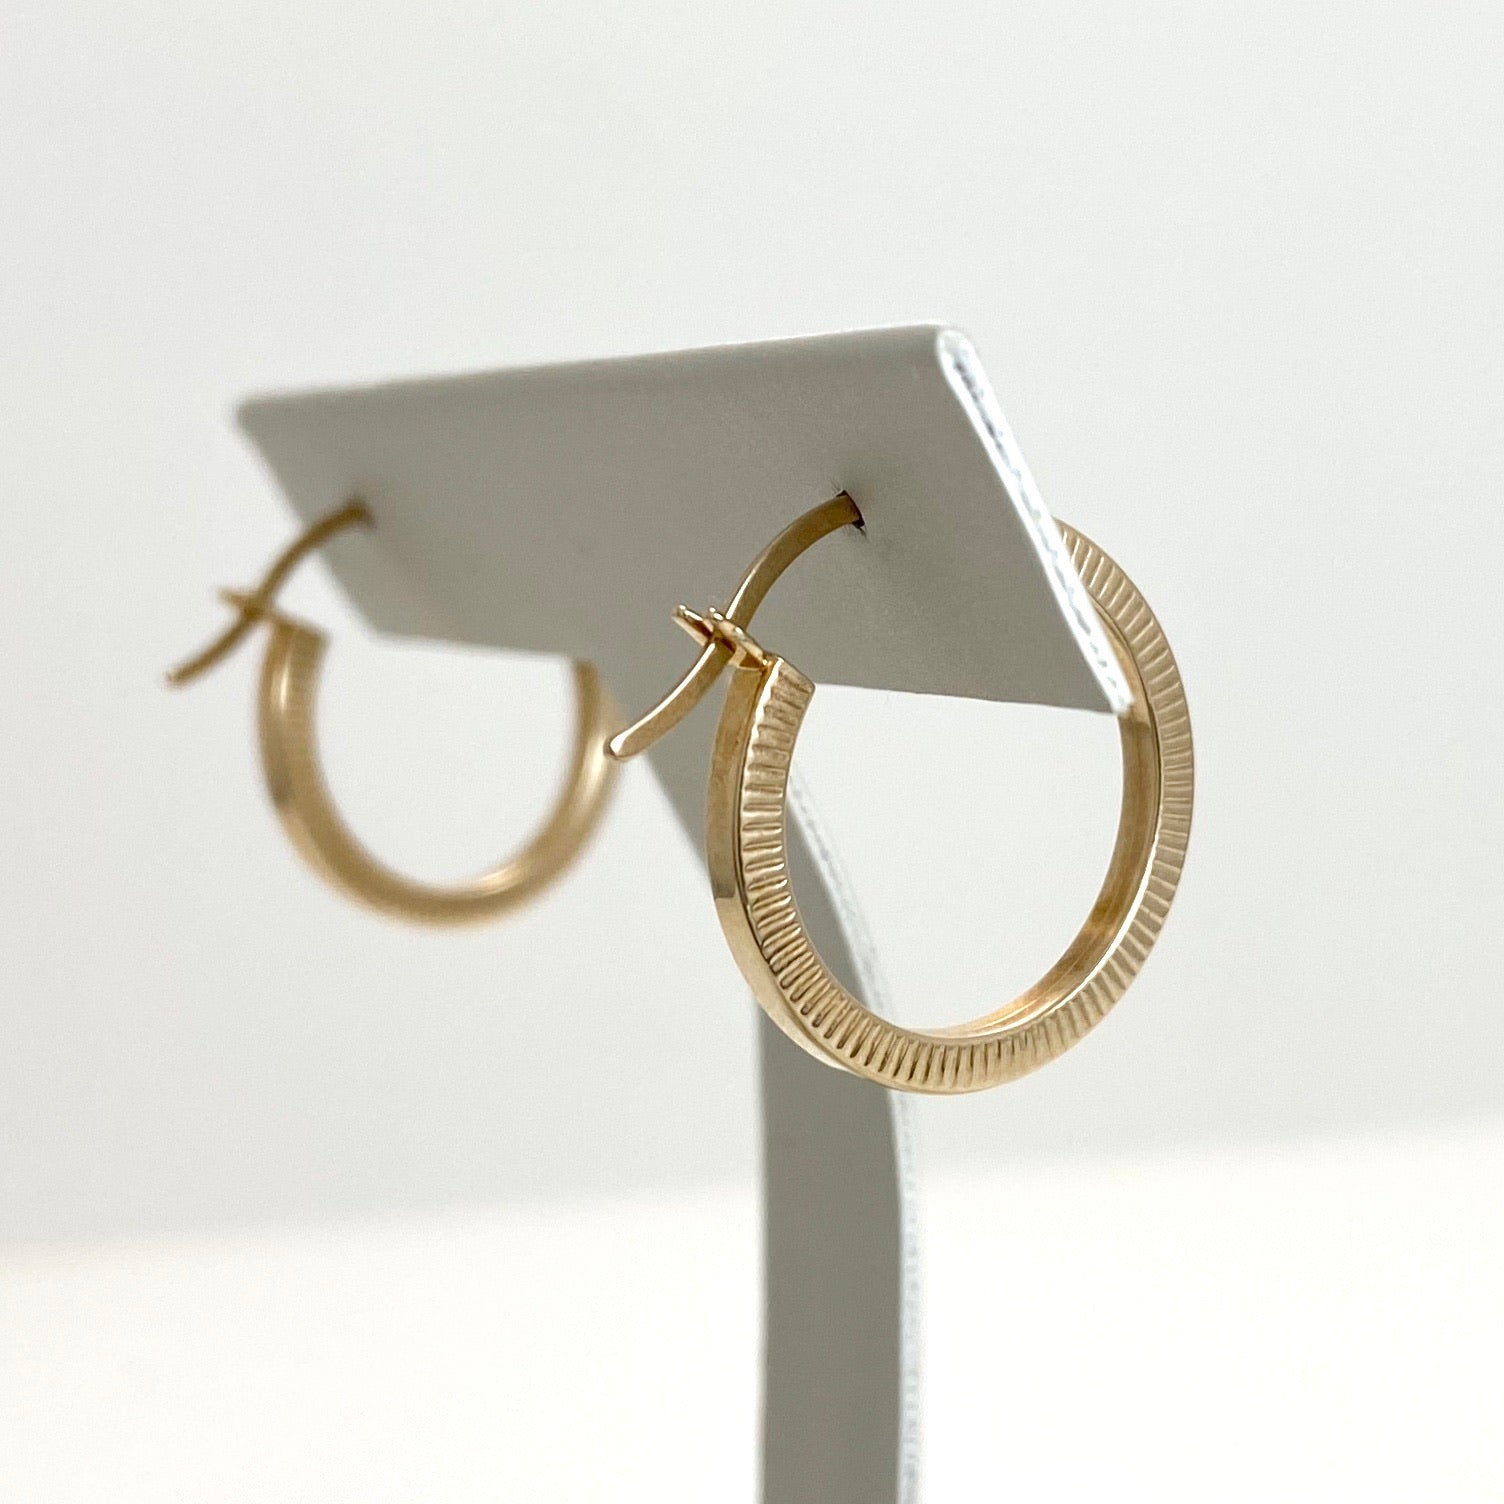 10K Yellow Gold Medium Hoop Earrings with Lined Design on Sides